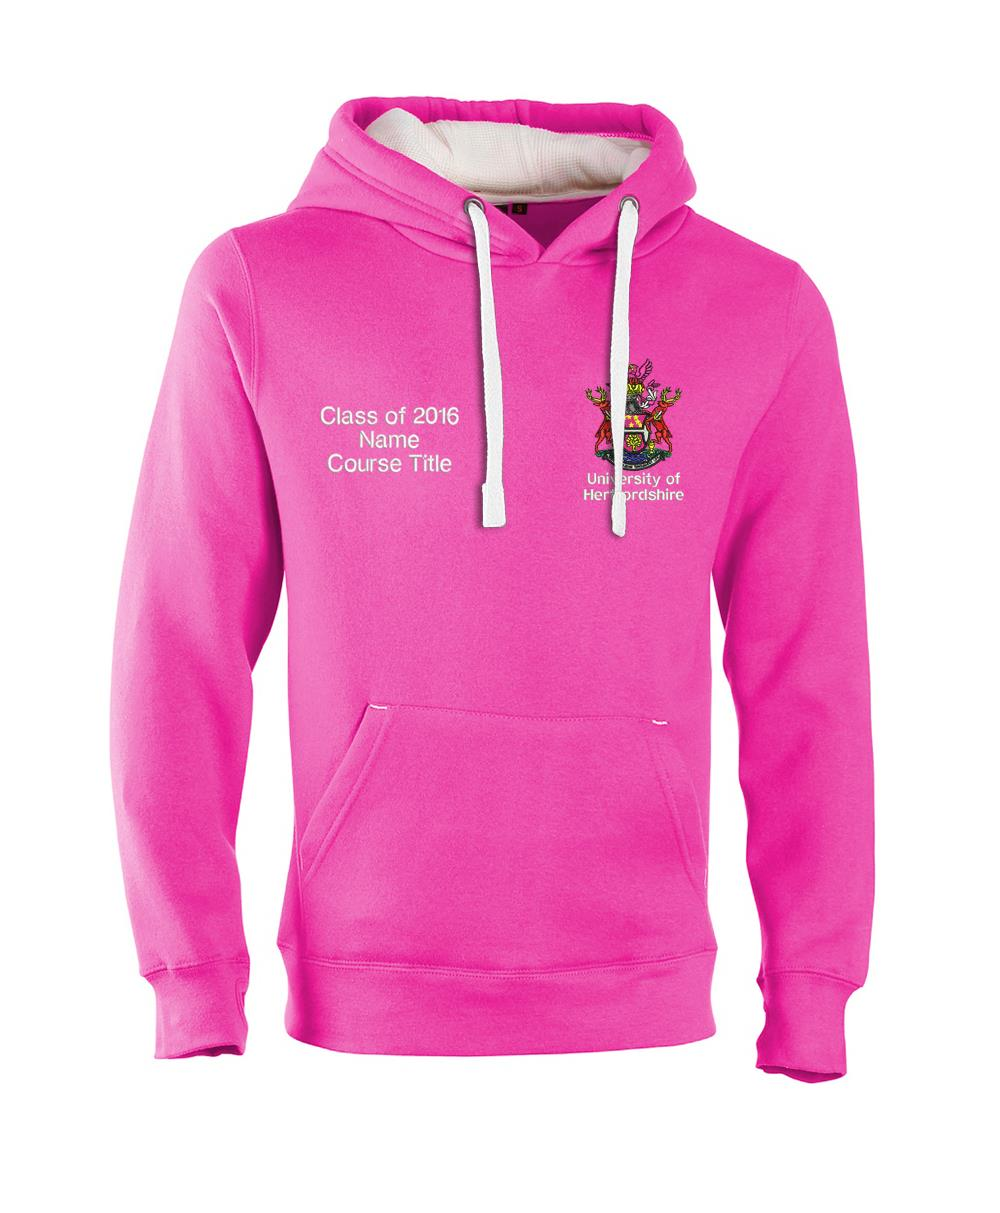 W89PF-Embroidered Ultra-Premium Graduation Hoodie-Hertfordshire Ultra Soft Feel Hooded Top